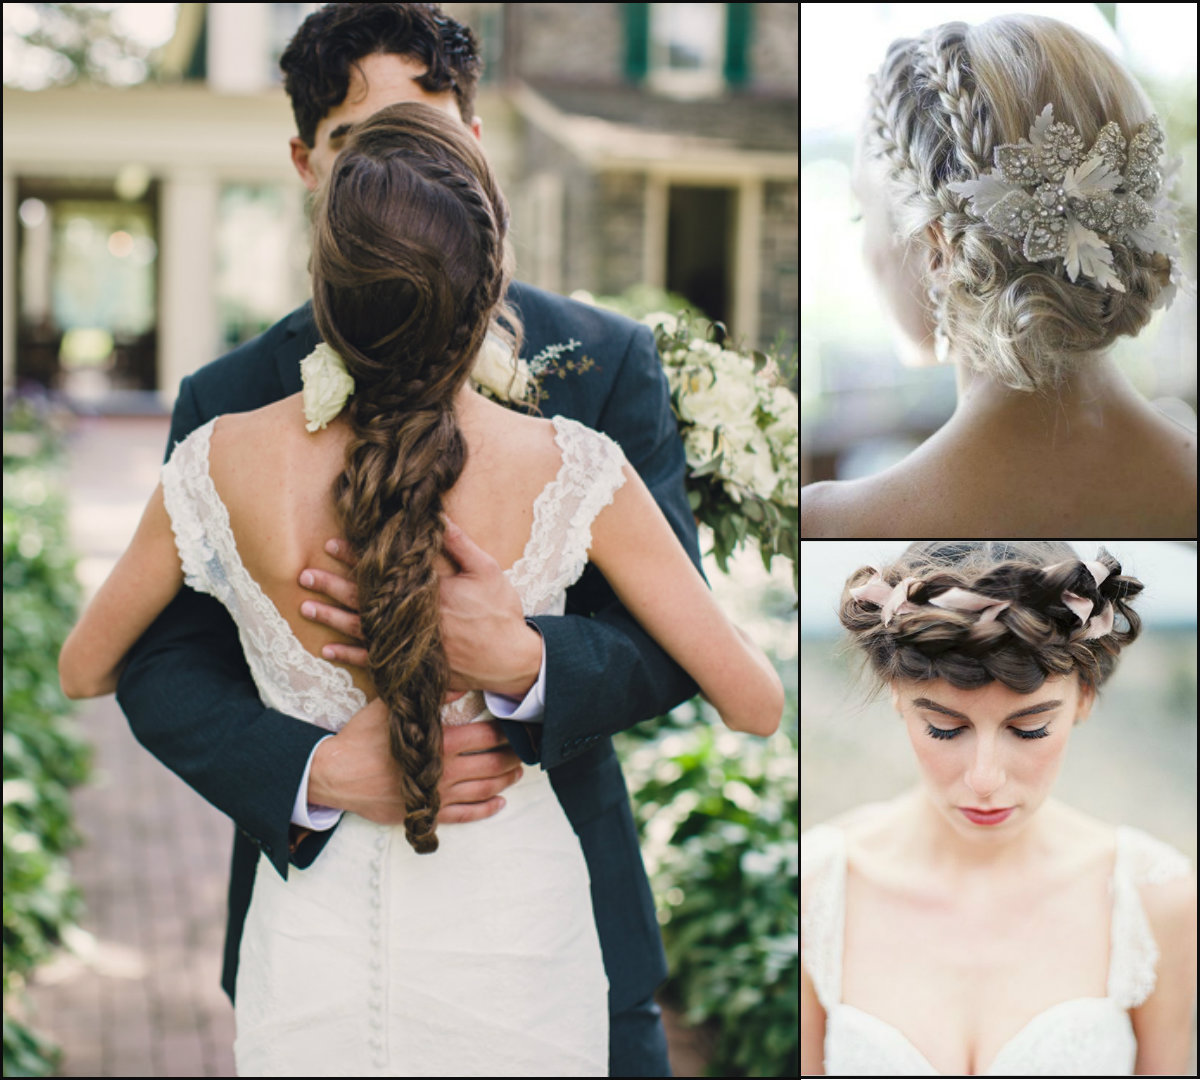 Wedding Hairstyles Braid: Lovely Wedding Braids Hairstyles 2017